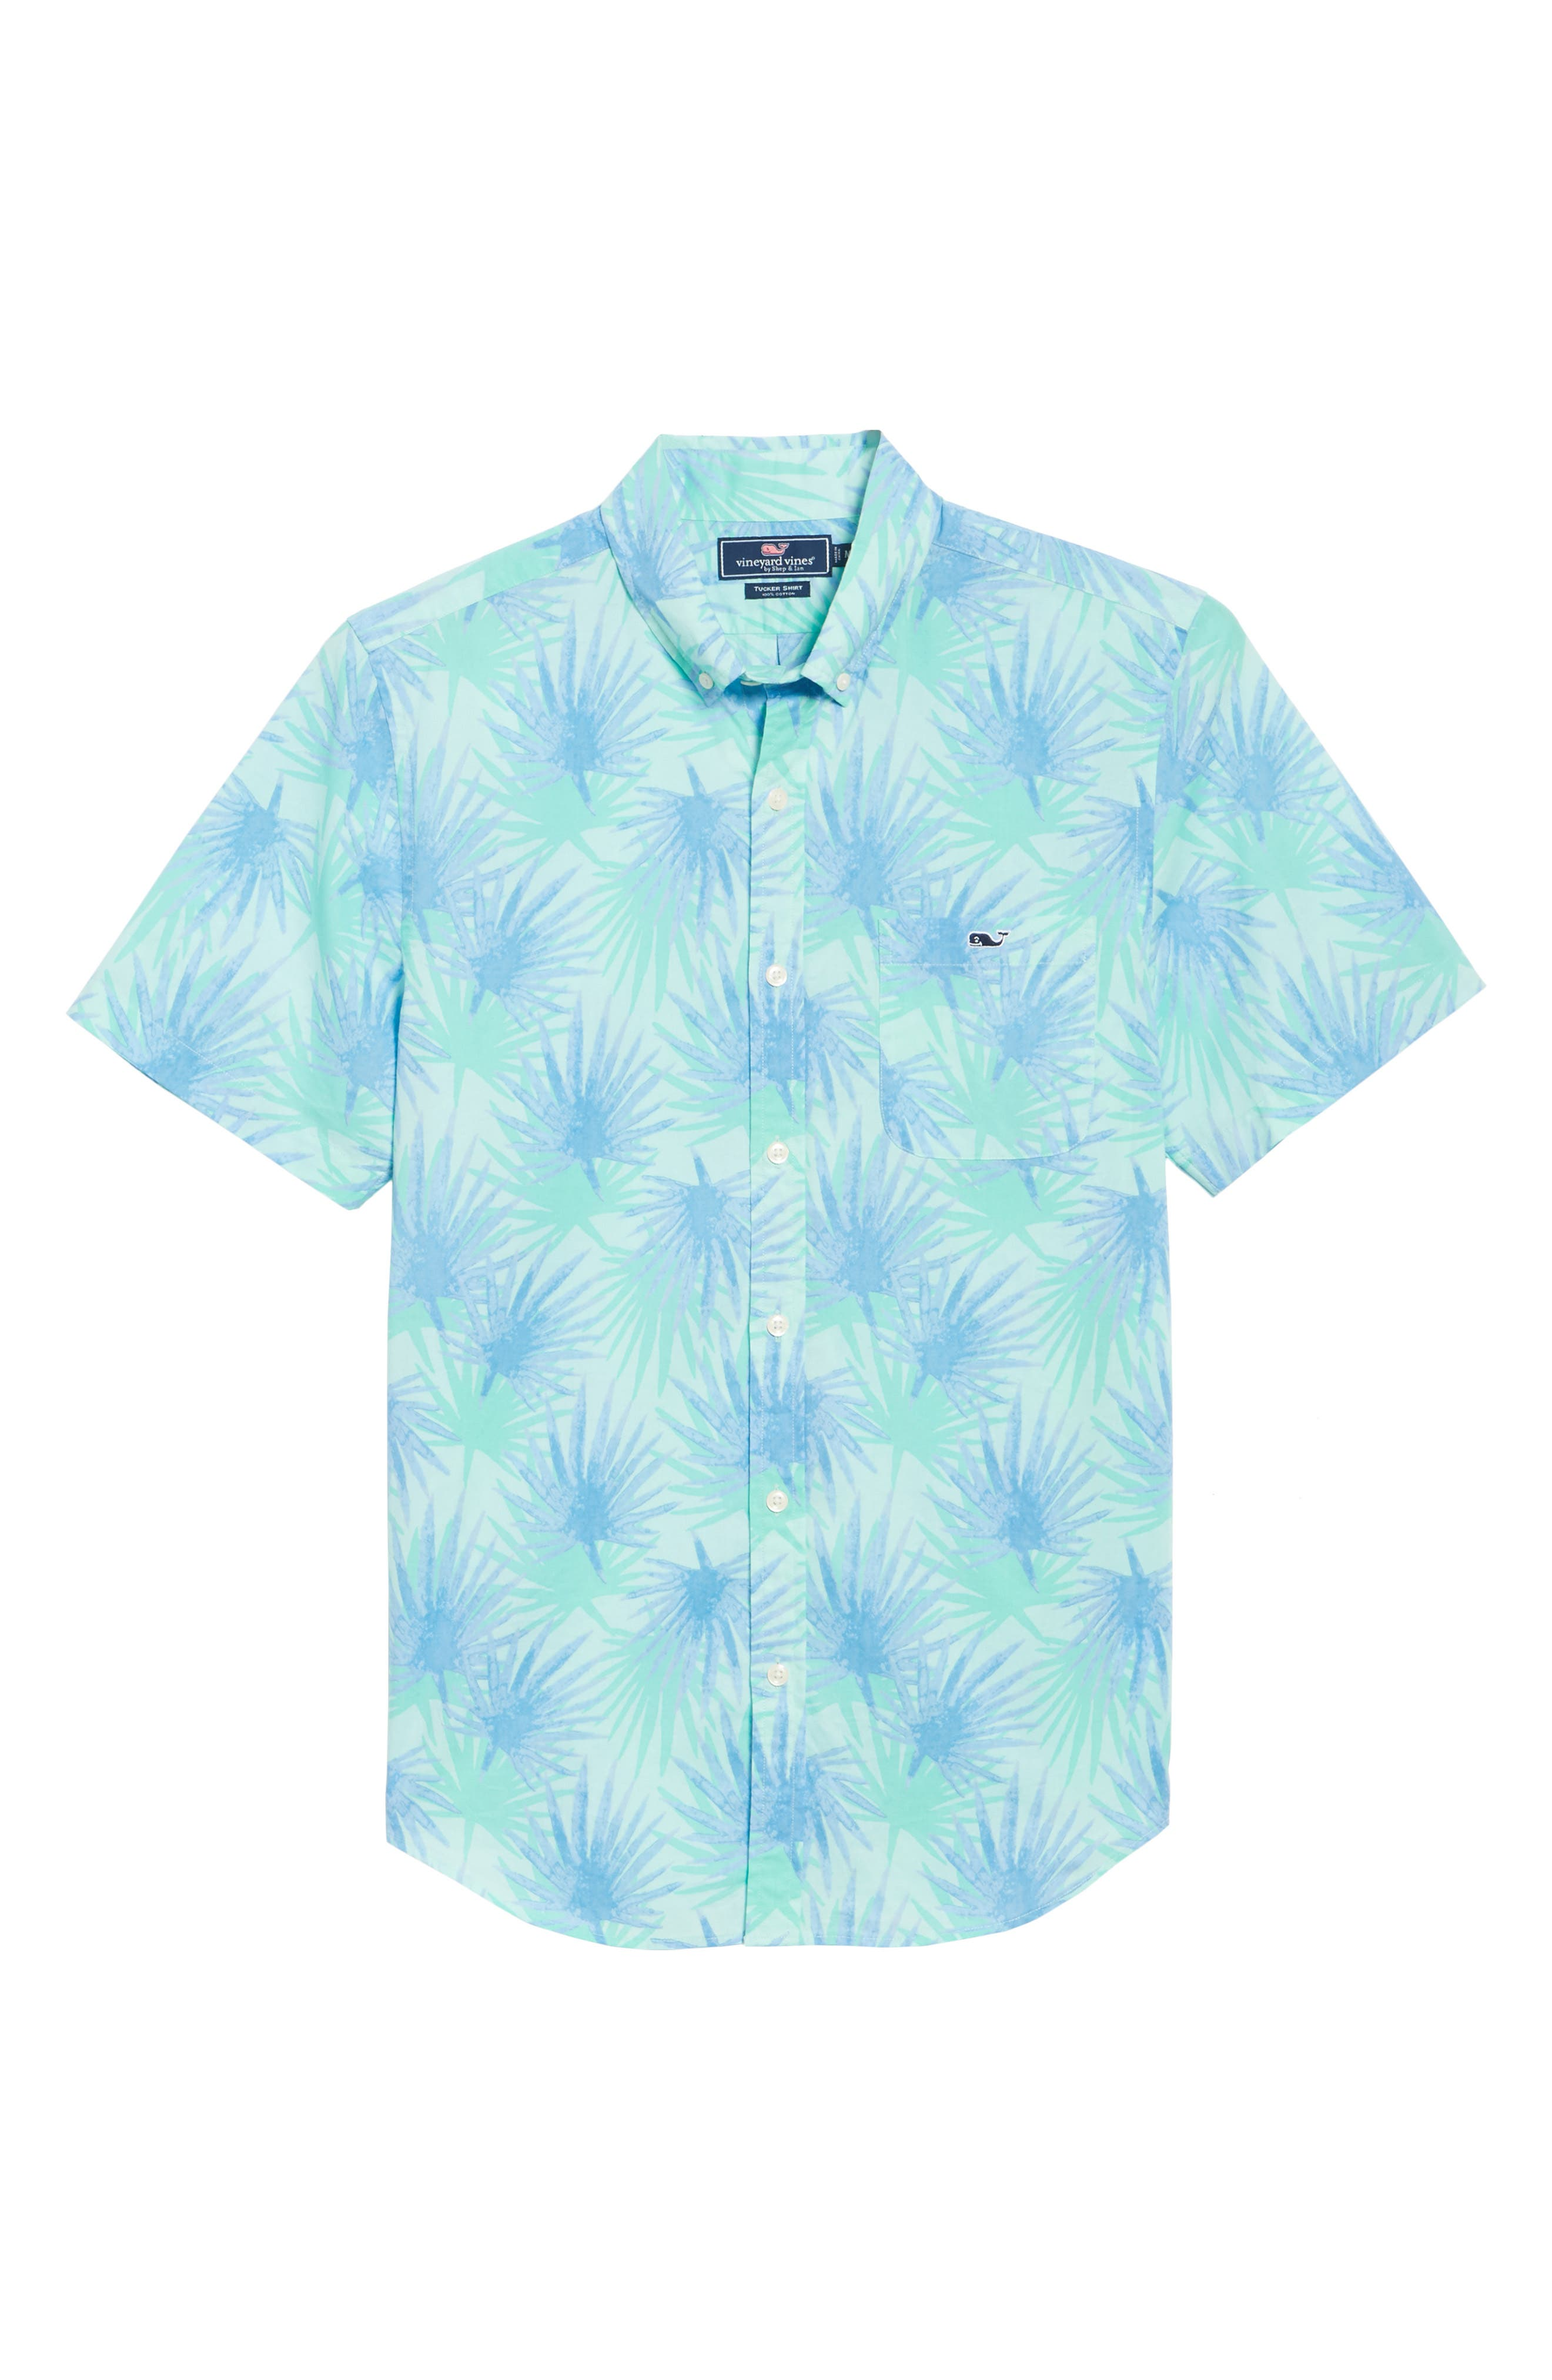 Electric Palm Slim Fit Print Short Sleeve Sport Shirt,                             Alternate thumbnail 6, color,                             400